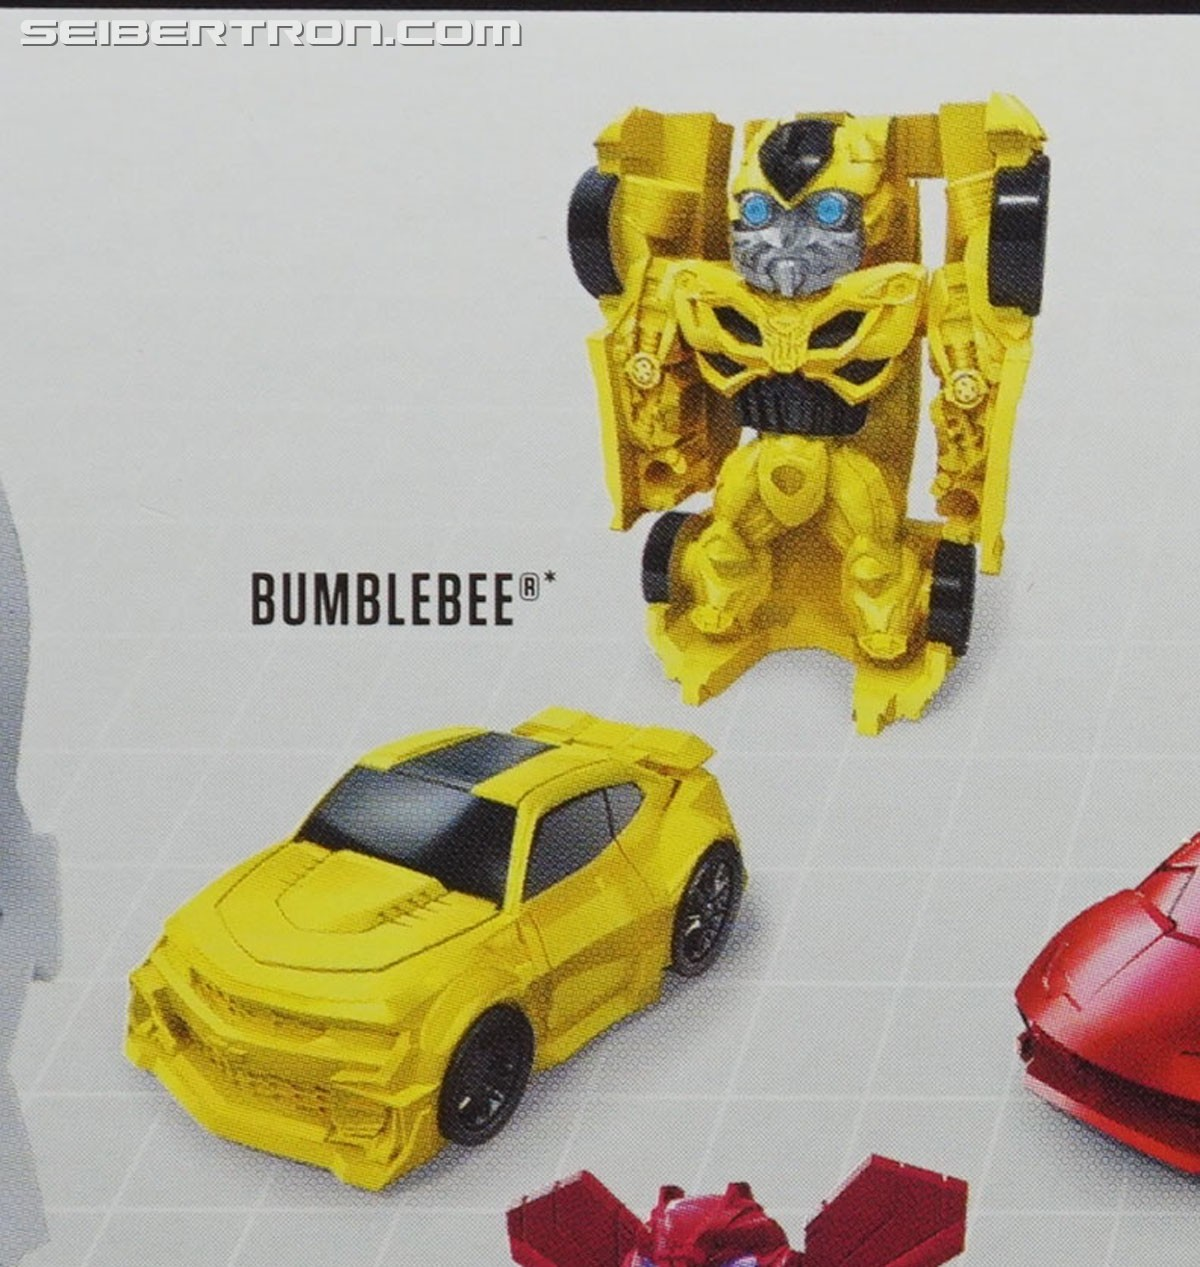 Transformers News: Transformers Tiny Titans Series 3 Robot Mode Images